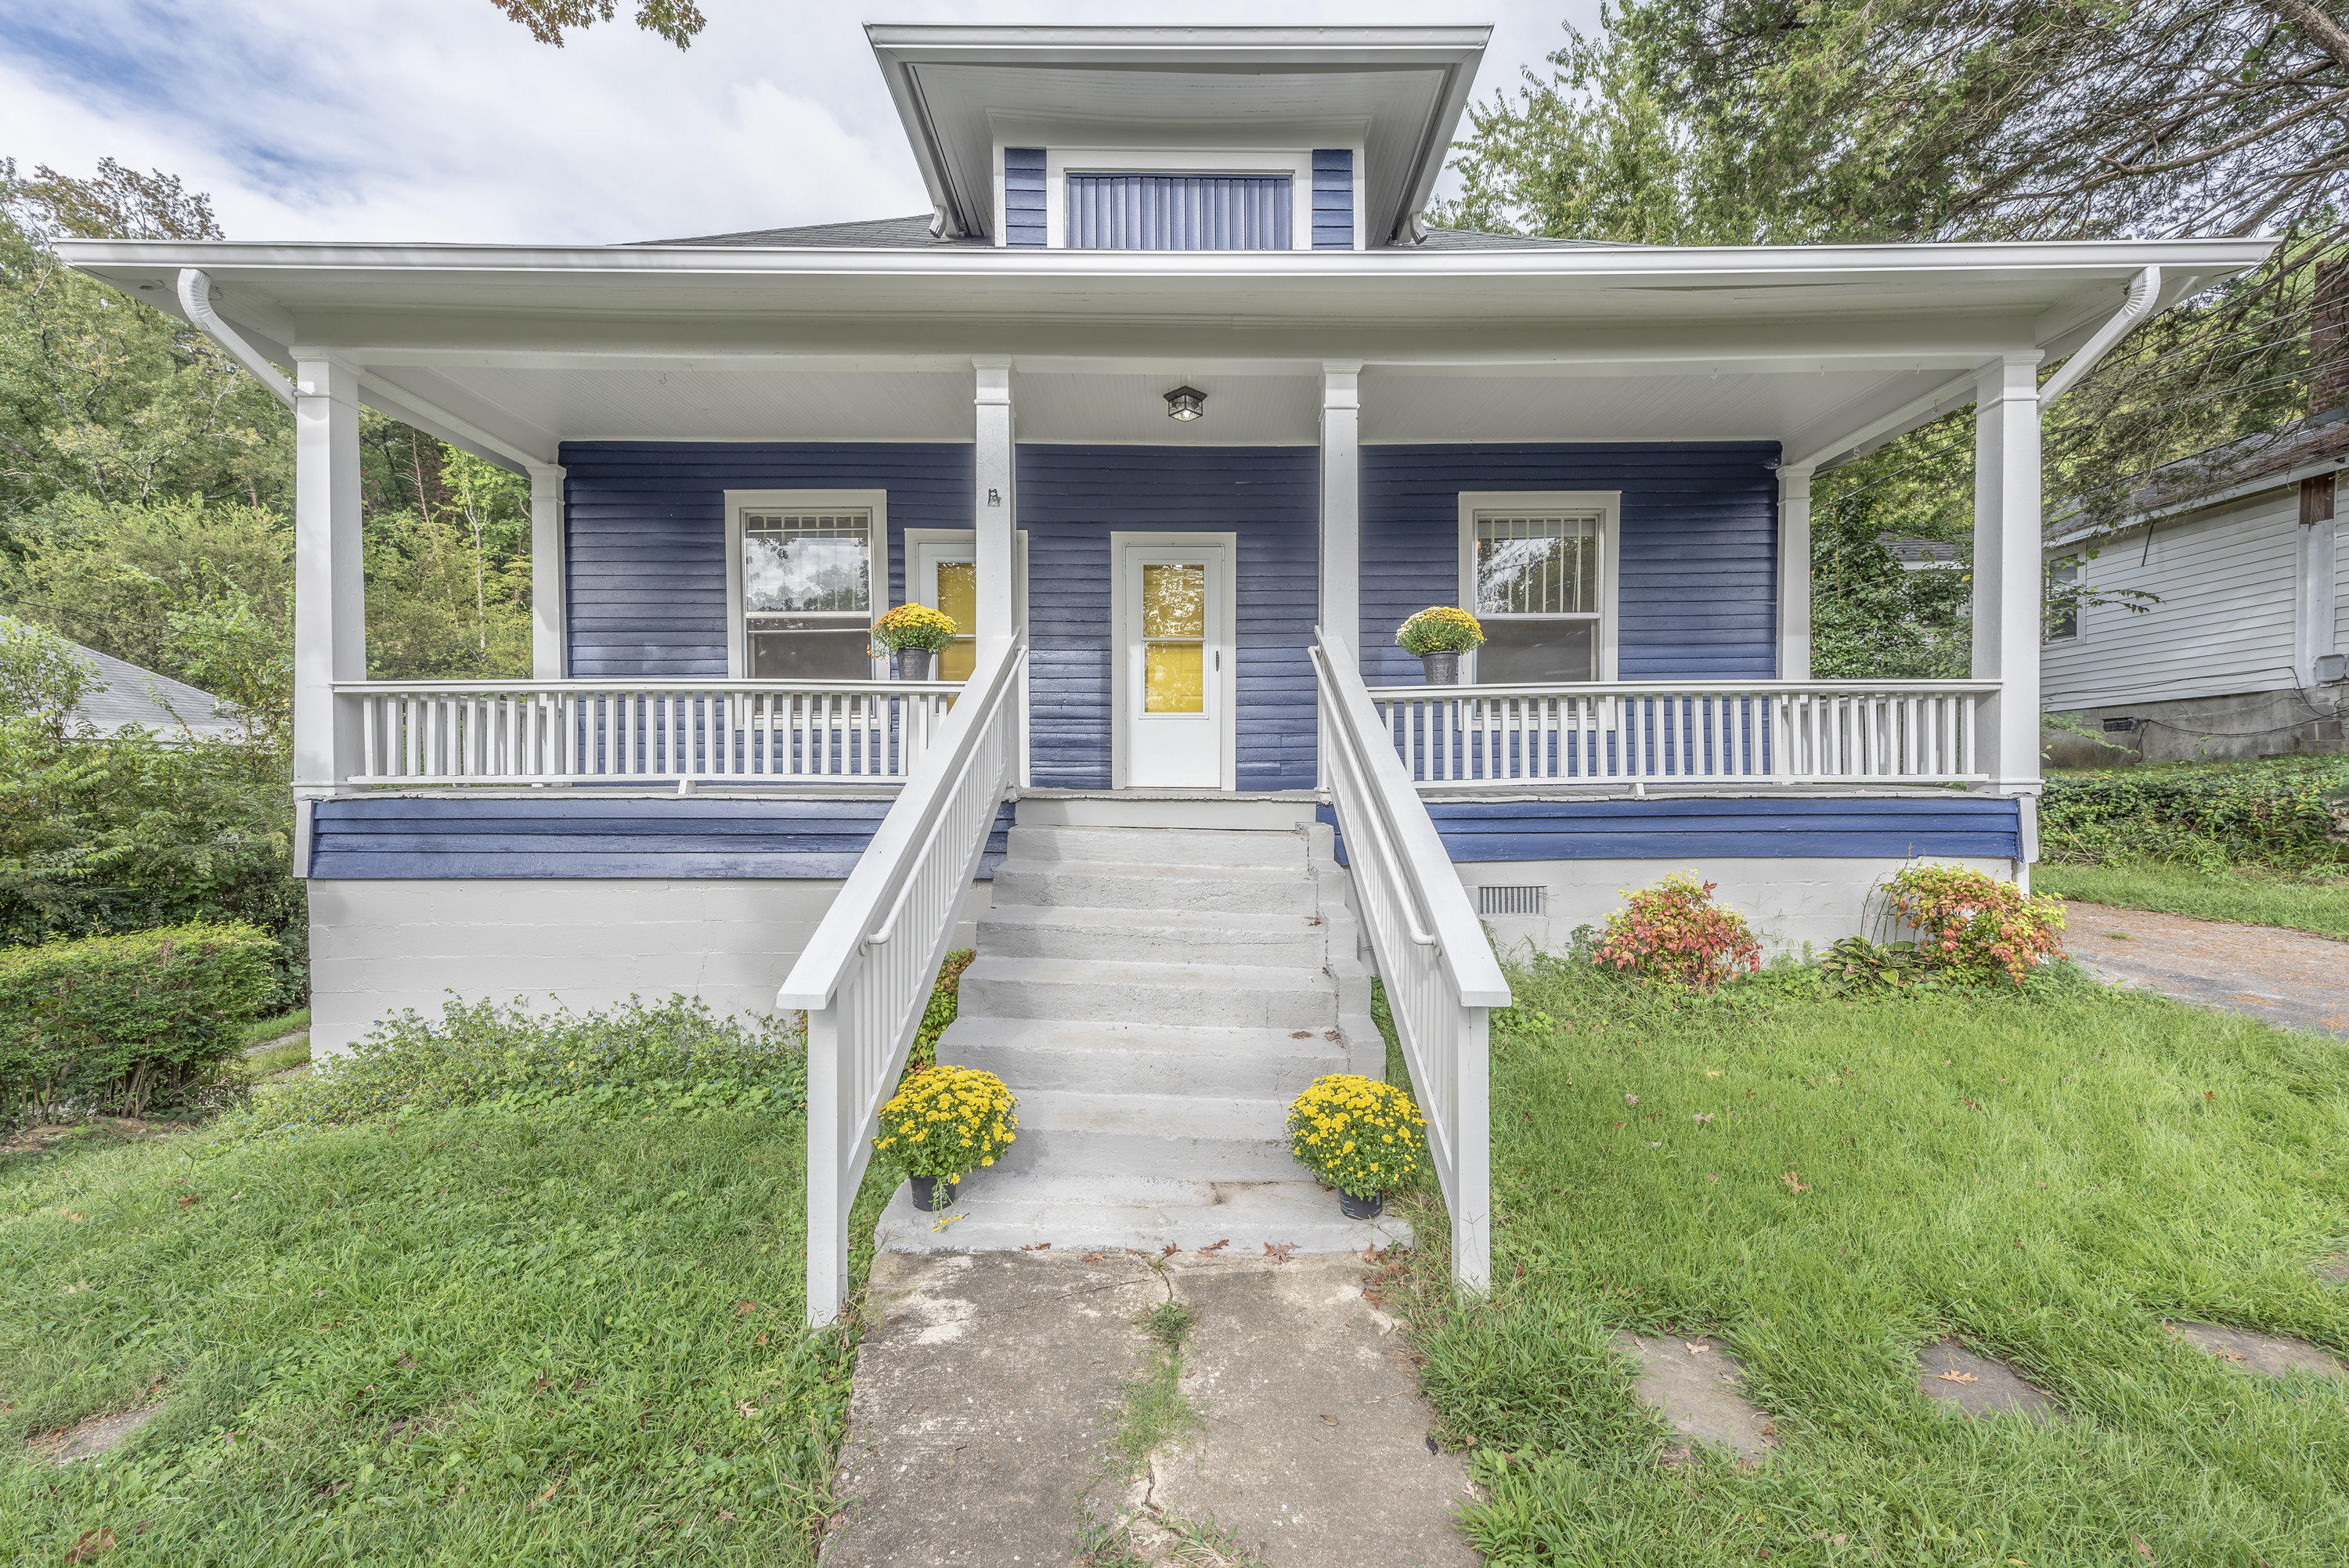 807 Merriam St, Chattanooga, TN 37405